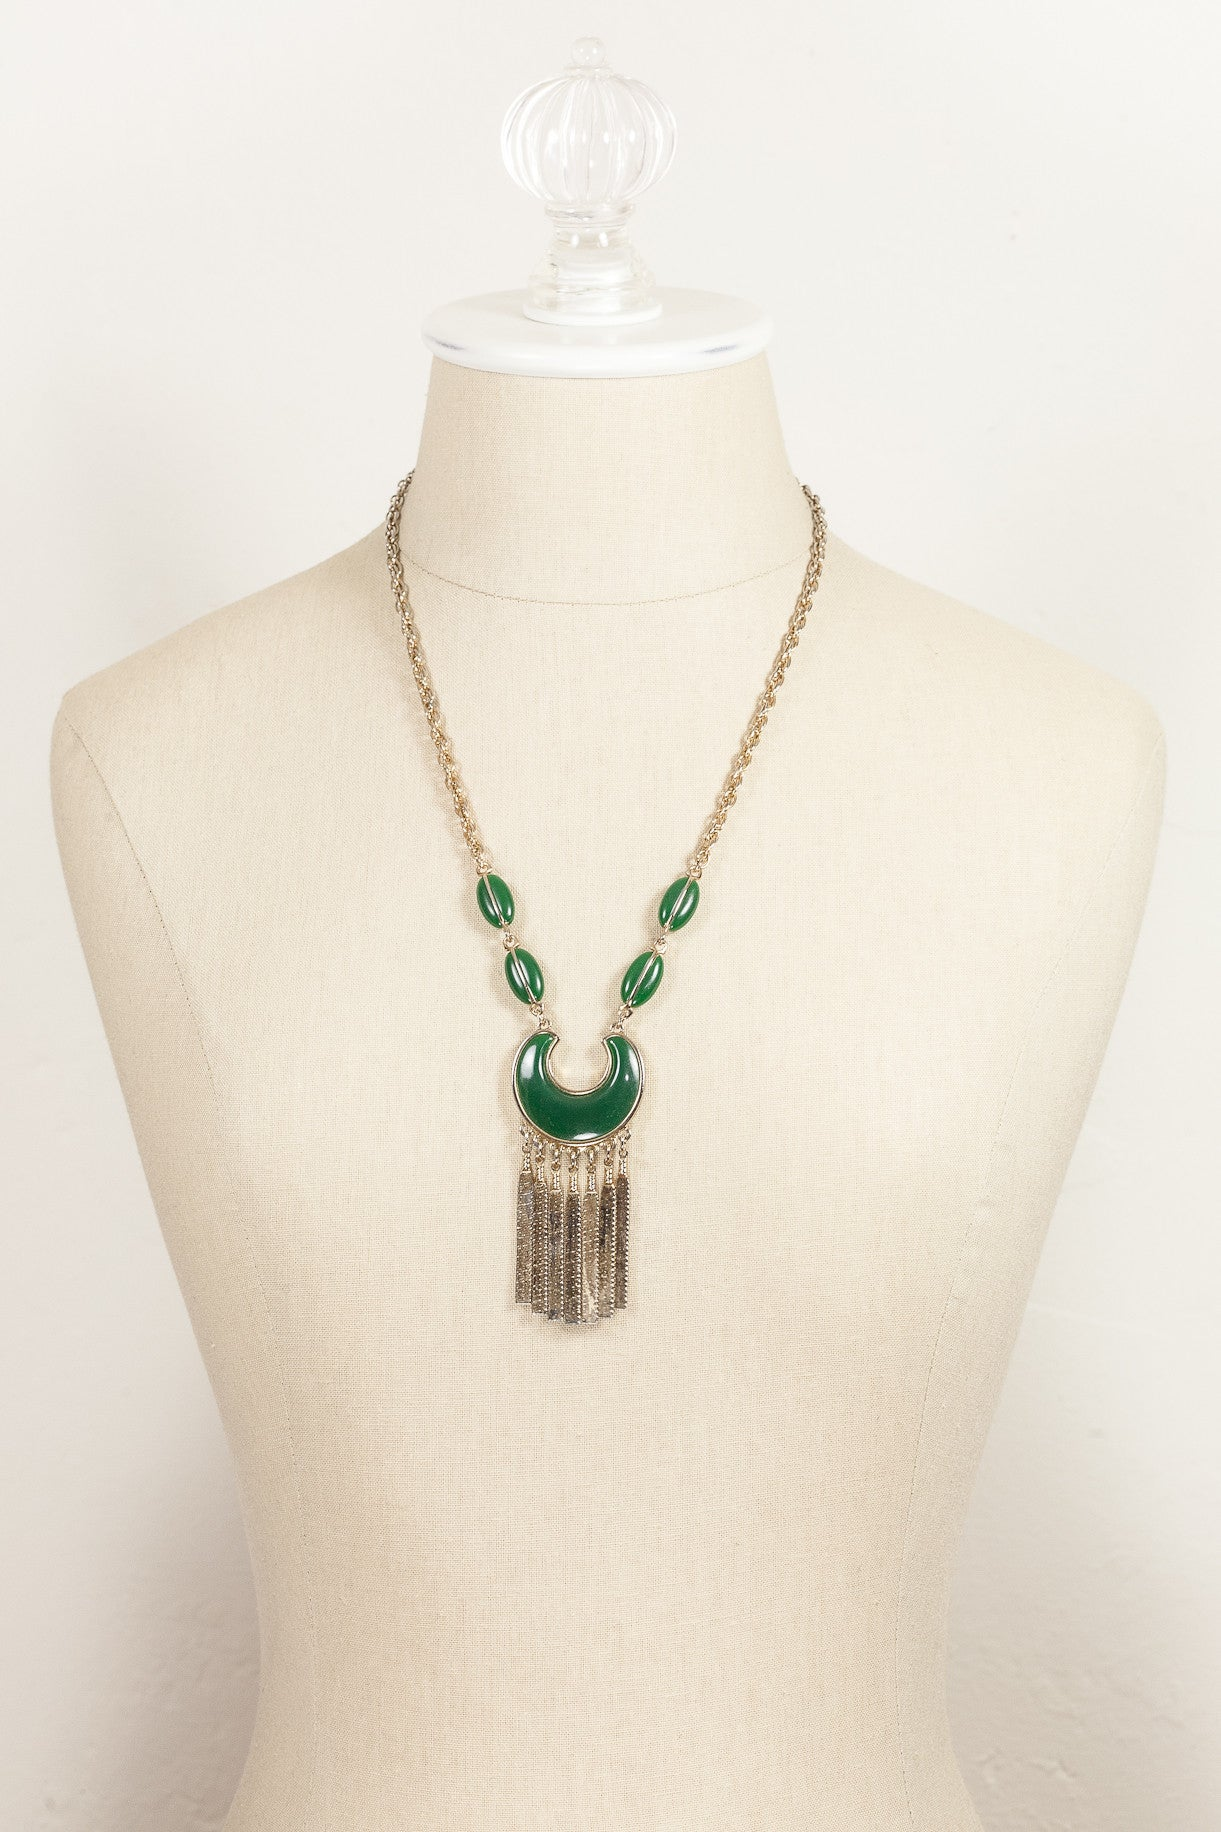 60's__Vintage__Green Tassel Necklace